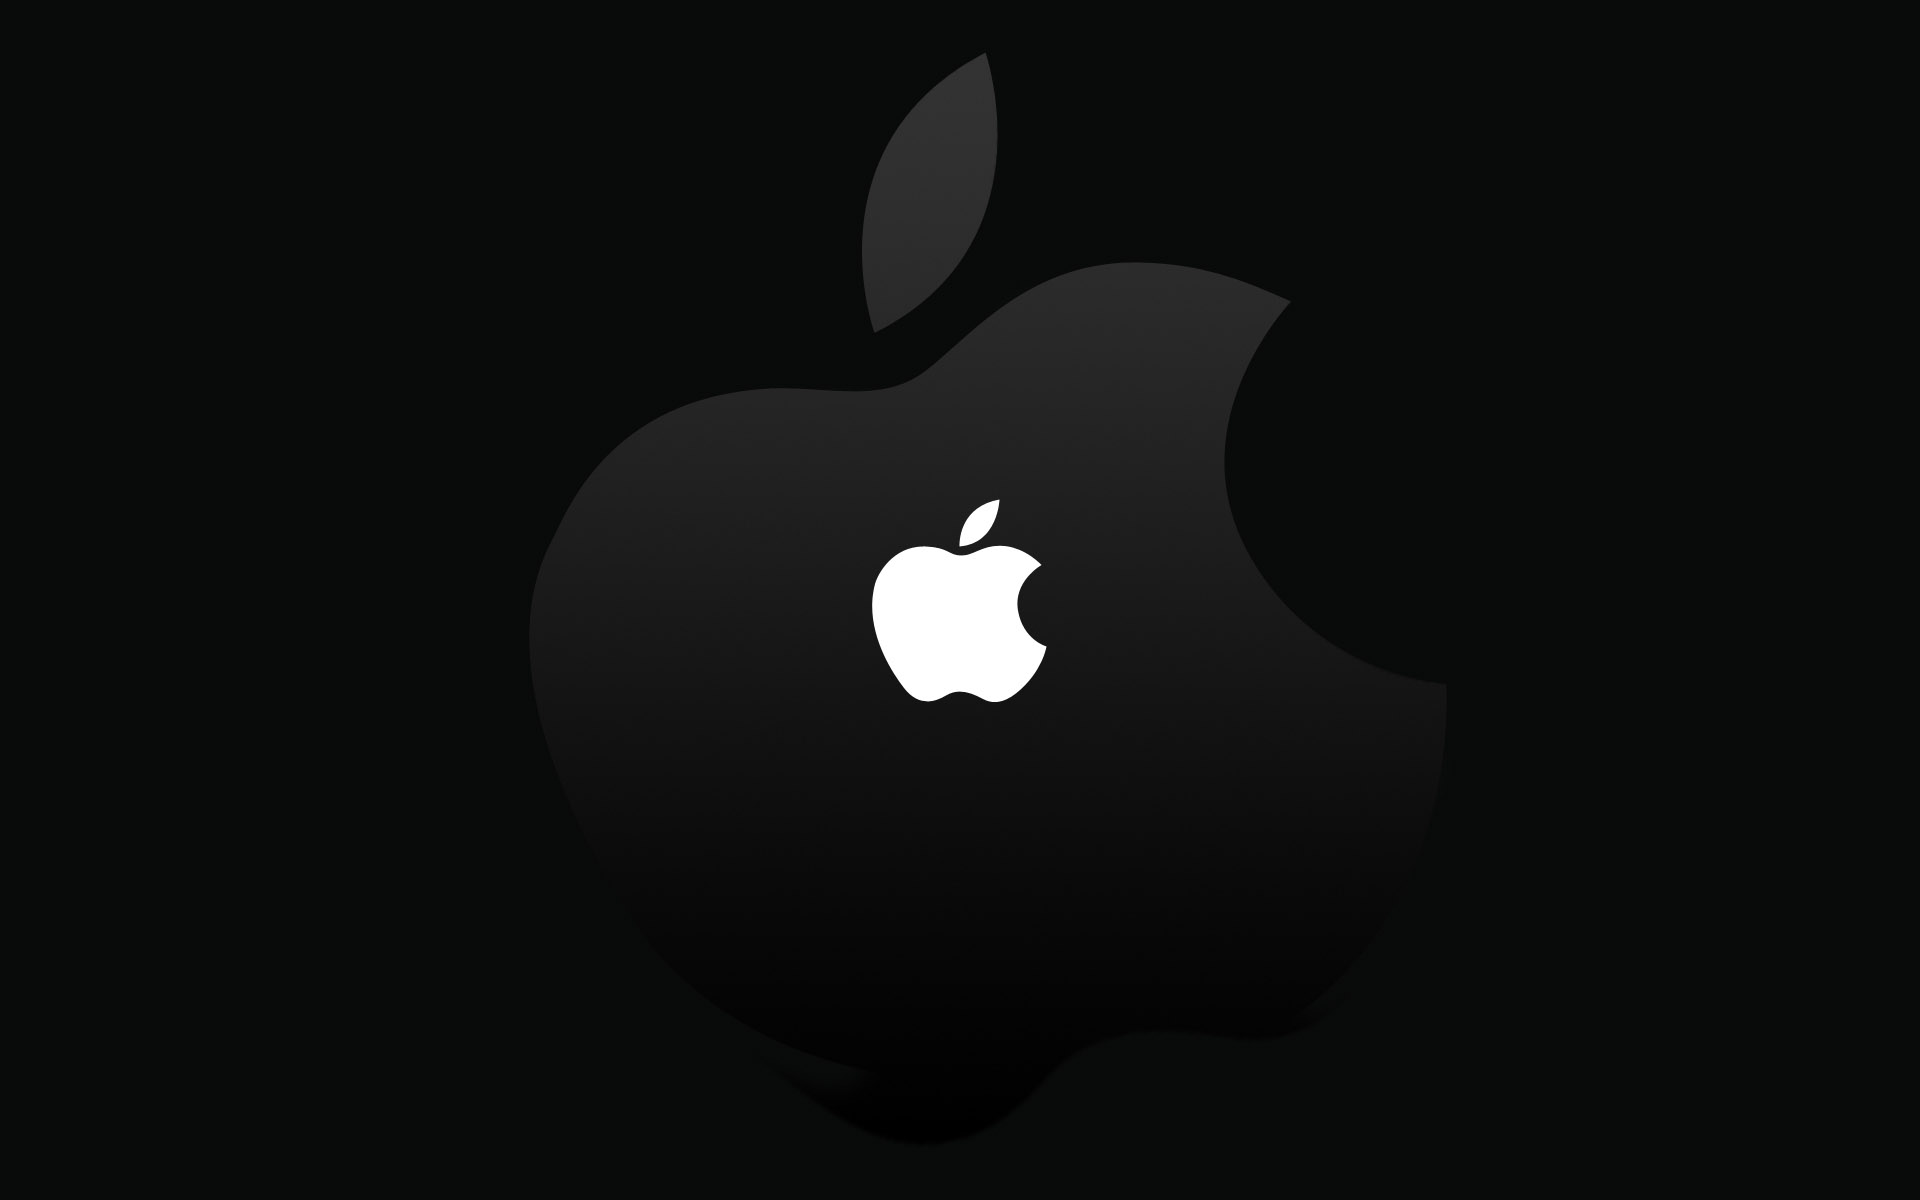 Apple Logo Hd Wallpapers For Iphone 1920 1080 Apple Logo: Apple Fond Ecran